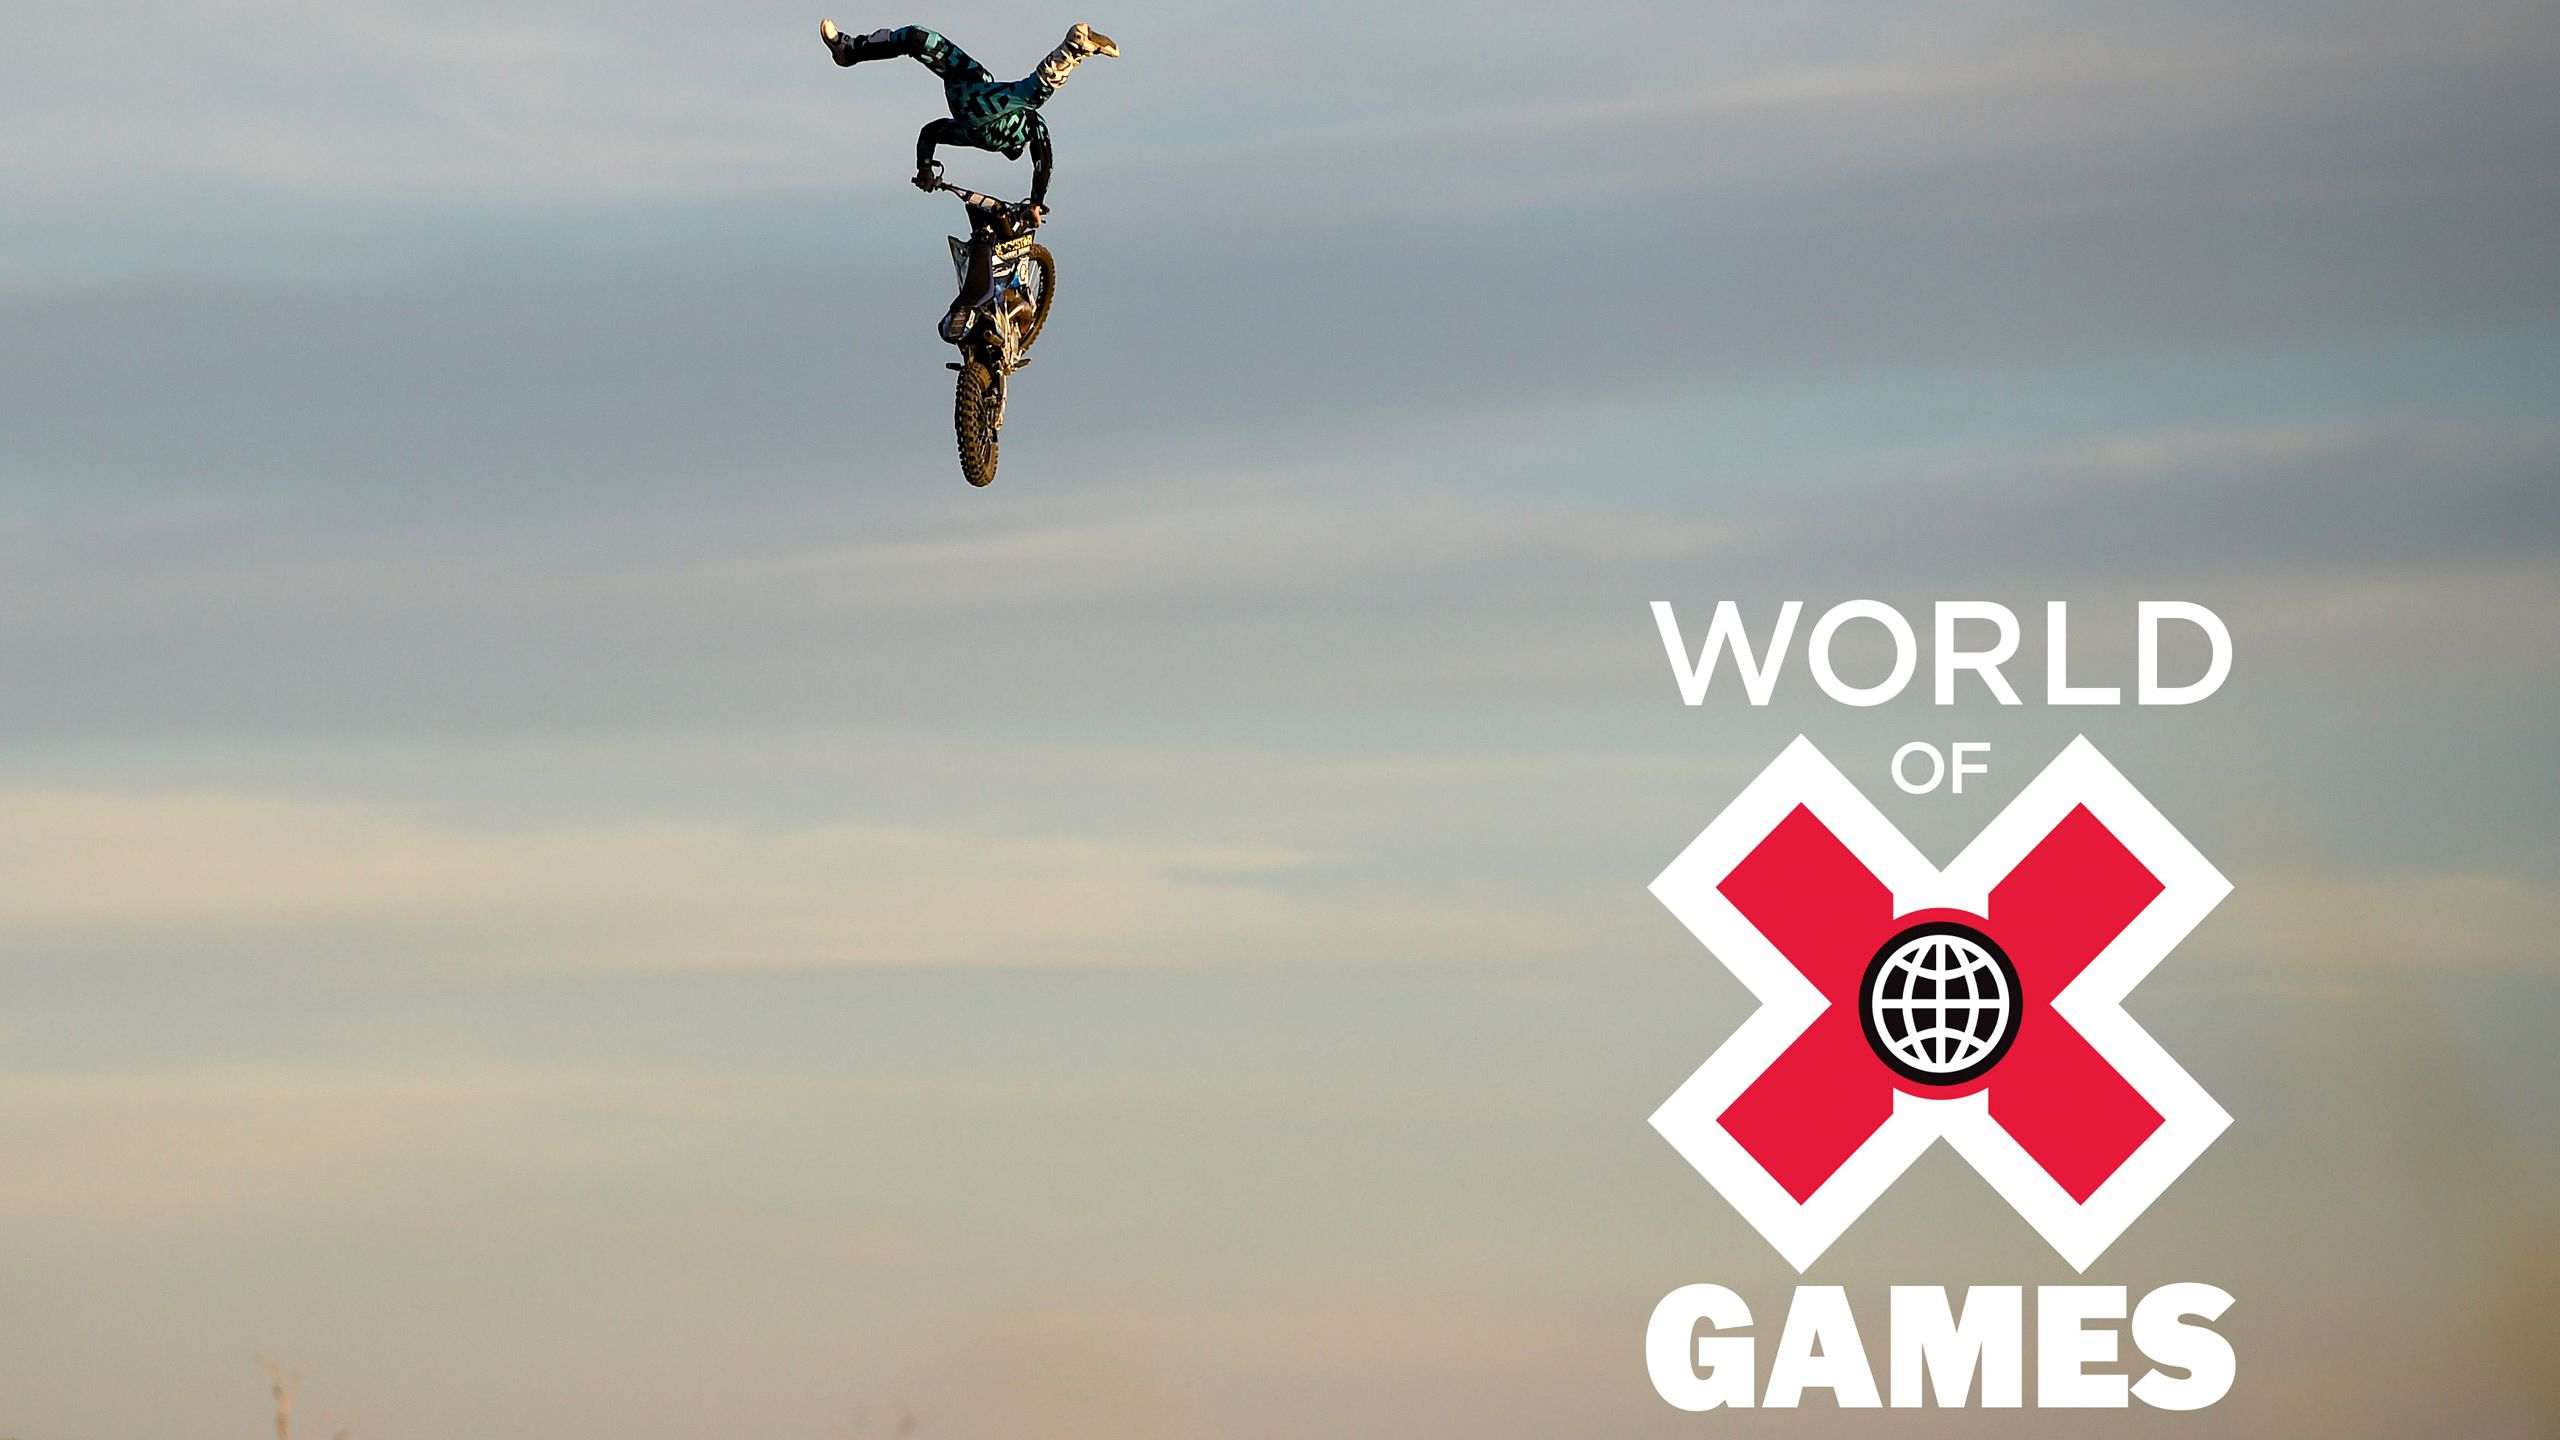 World of X Games: Real Moto 2017